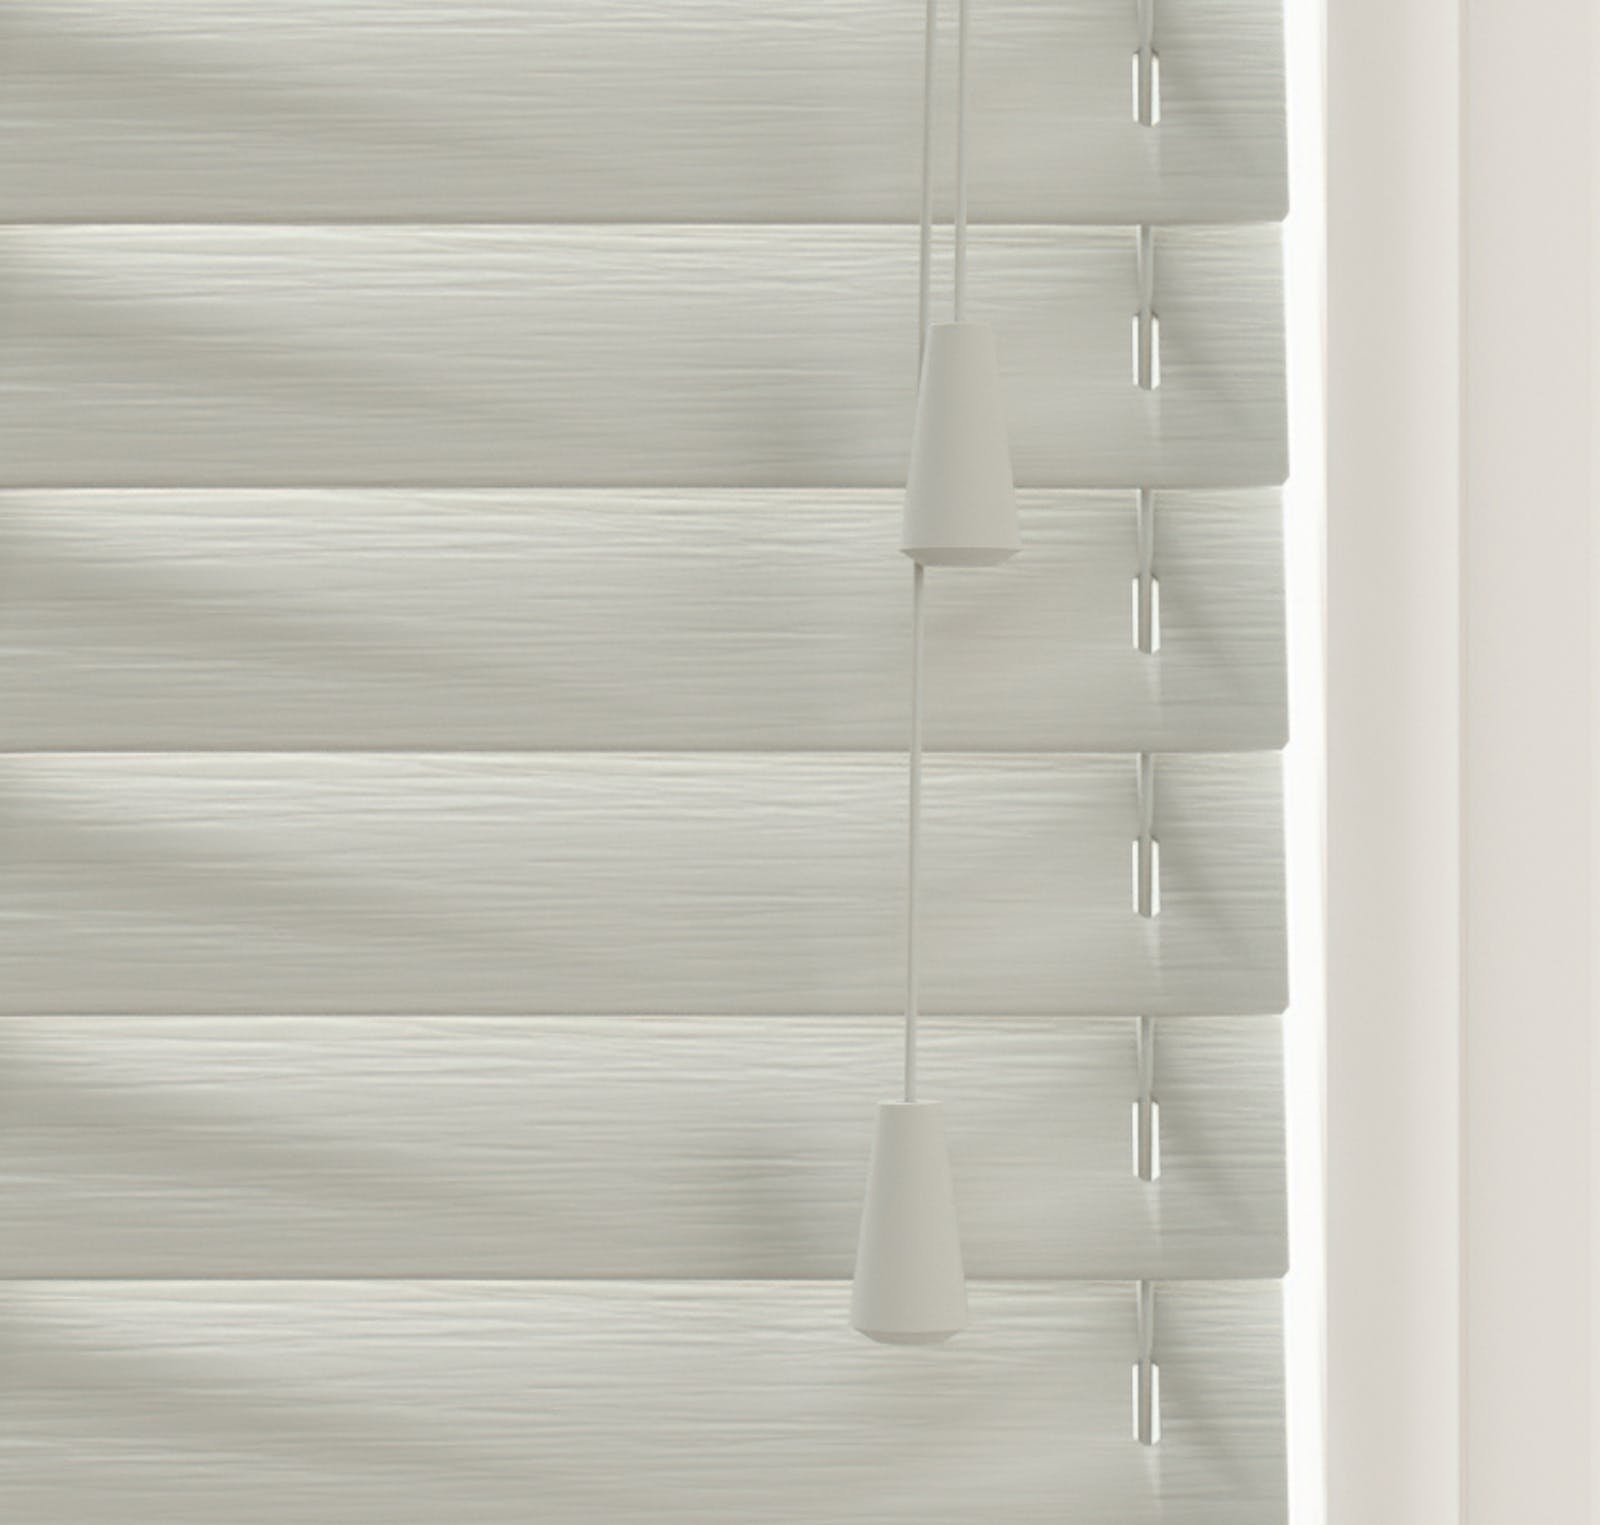 Close up view of Lick Grey 04 Venetian fine grain blinds